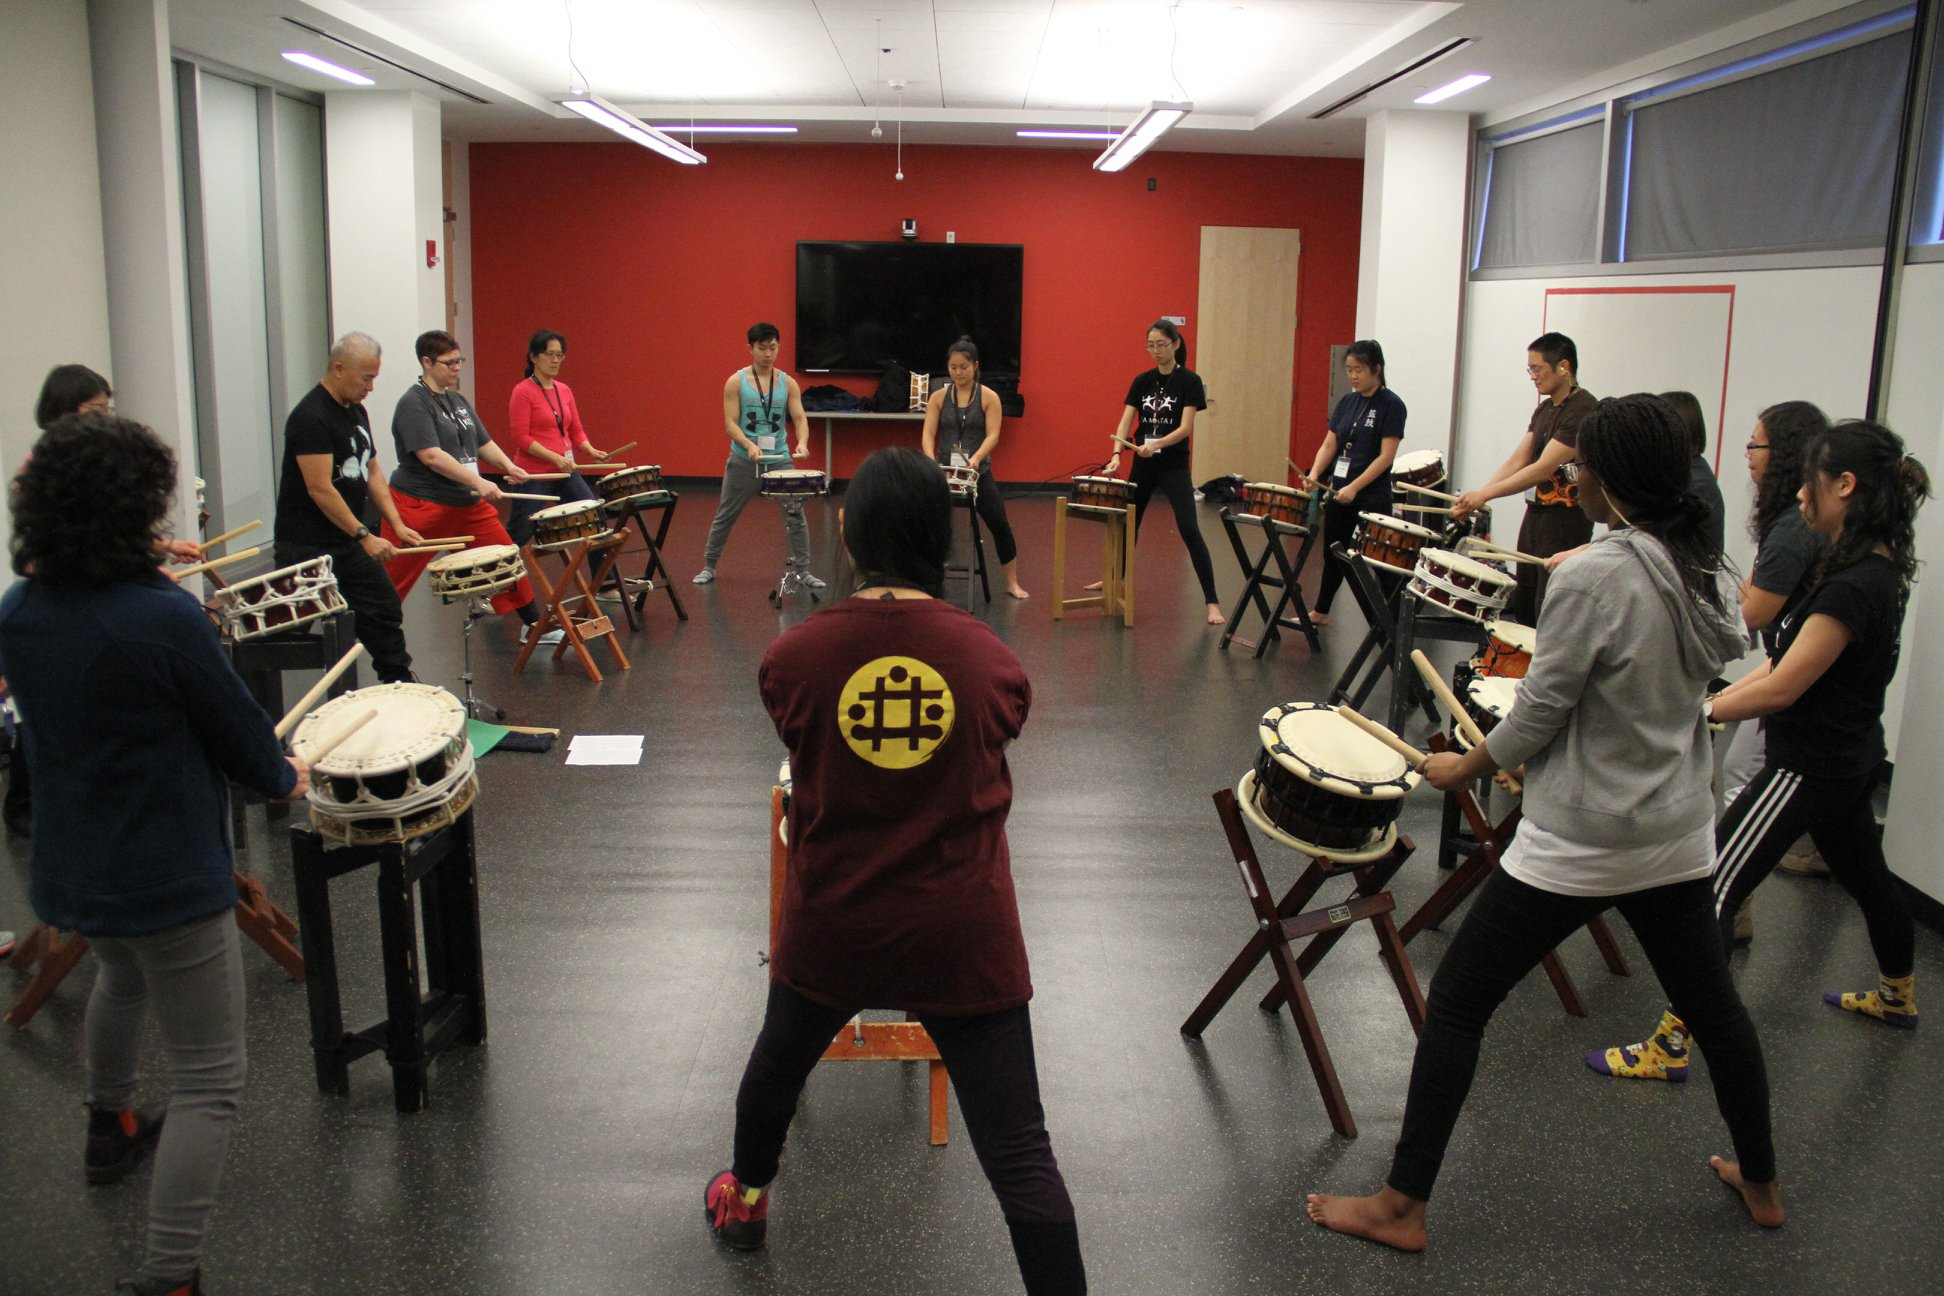 Student group Taiko Tides welcomed drum groups from across the country as Stony Brook University hosted the 2018 East Coast Taiko Conference (ECTC), February 9 through February 11.